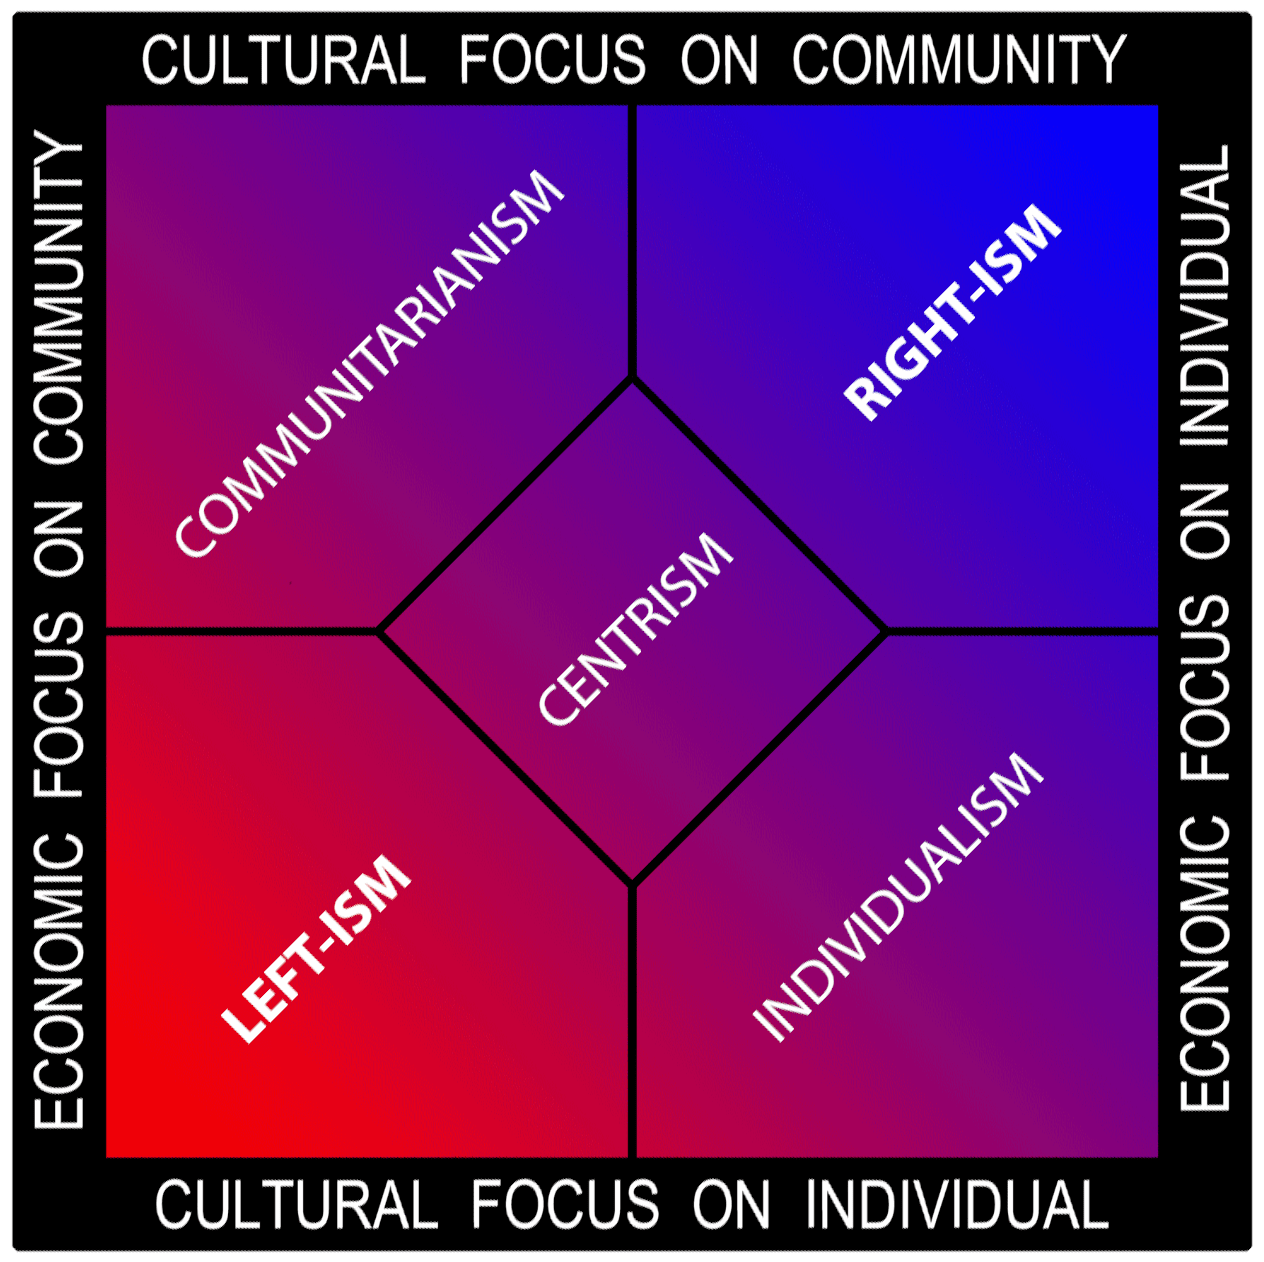 generic multi-axis political spectrum chart